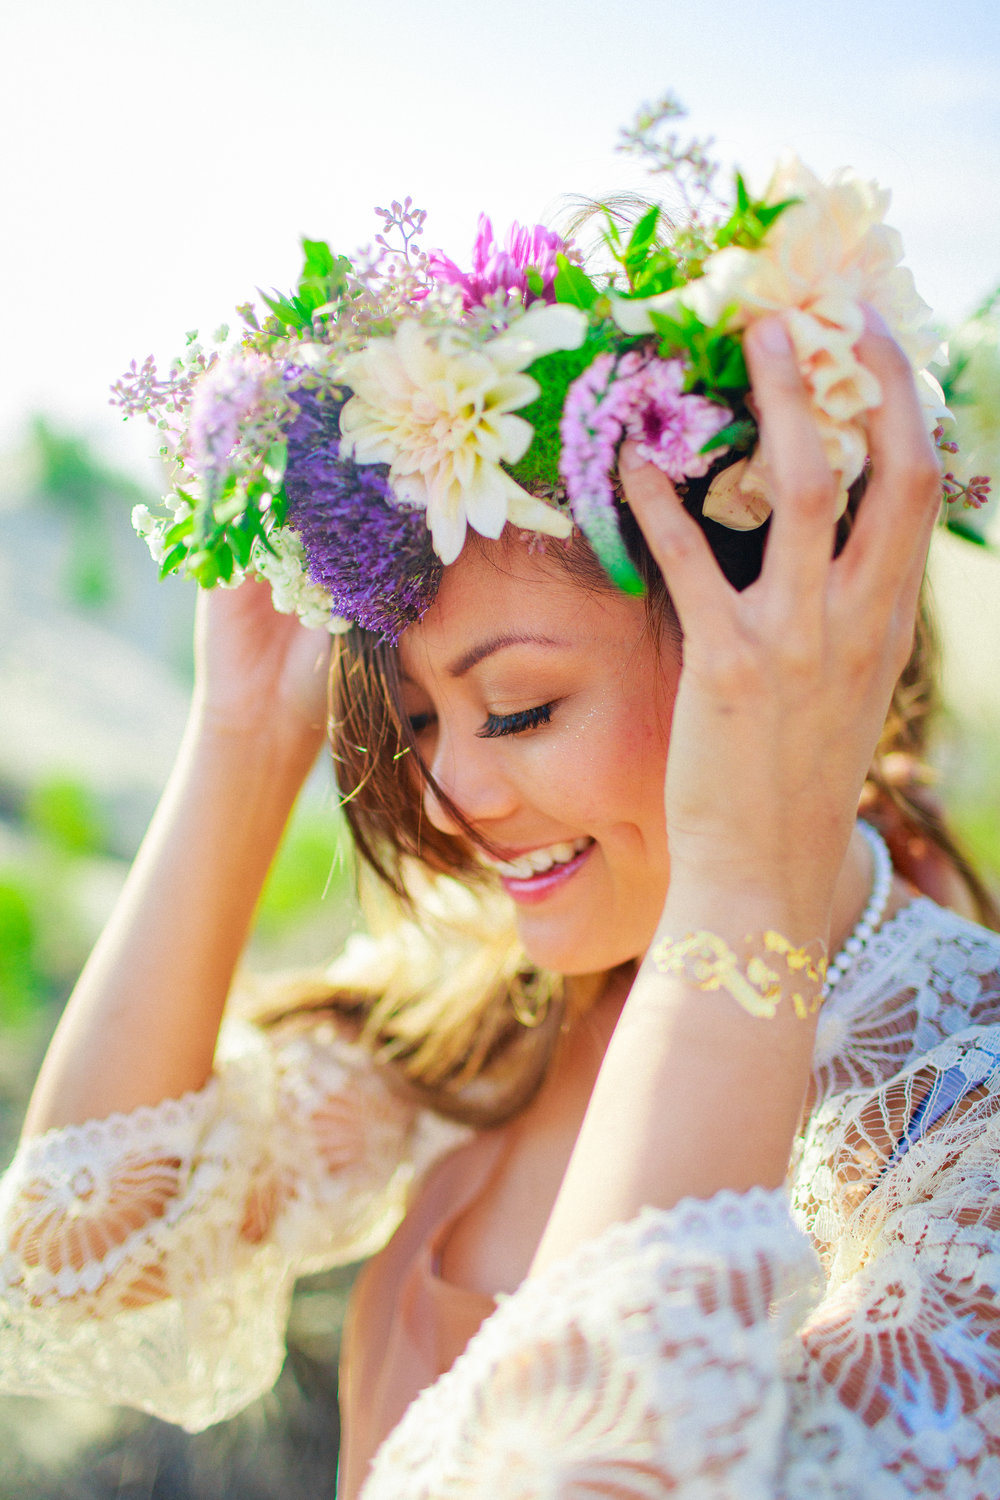 flower crowns worked like love potions,